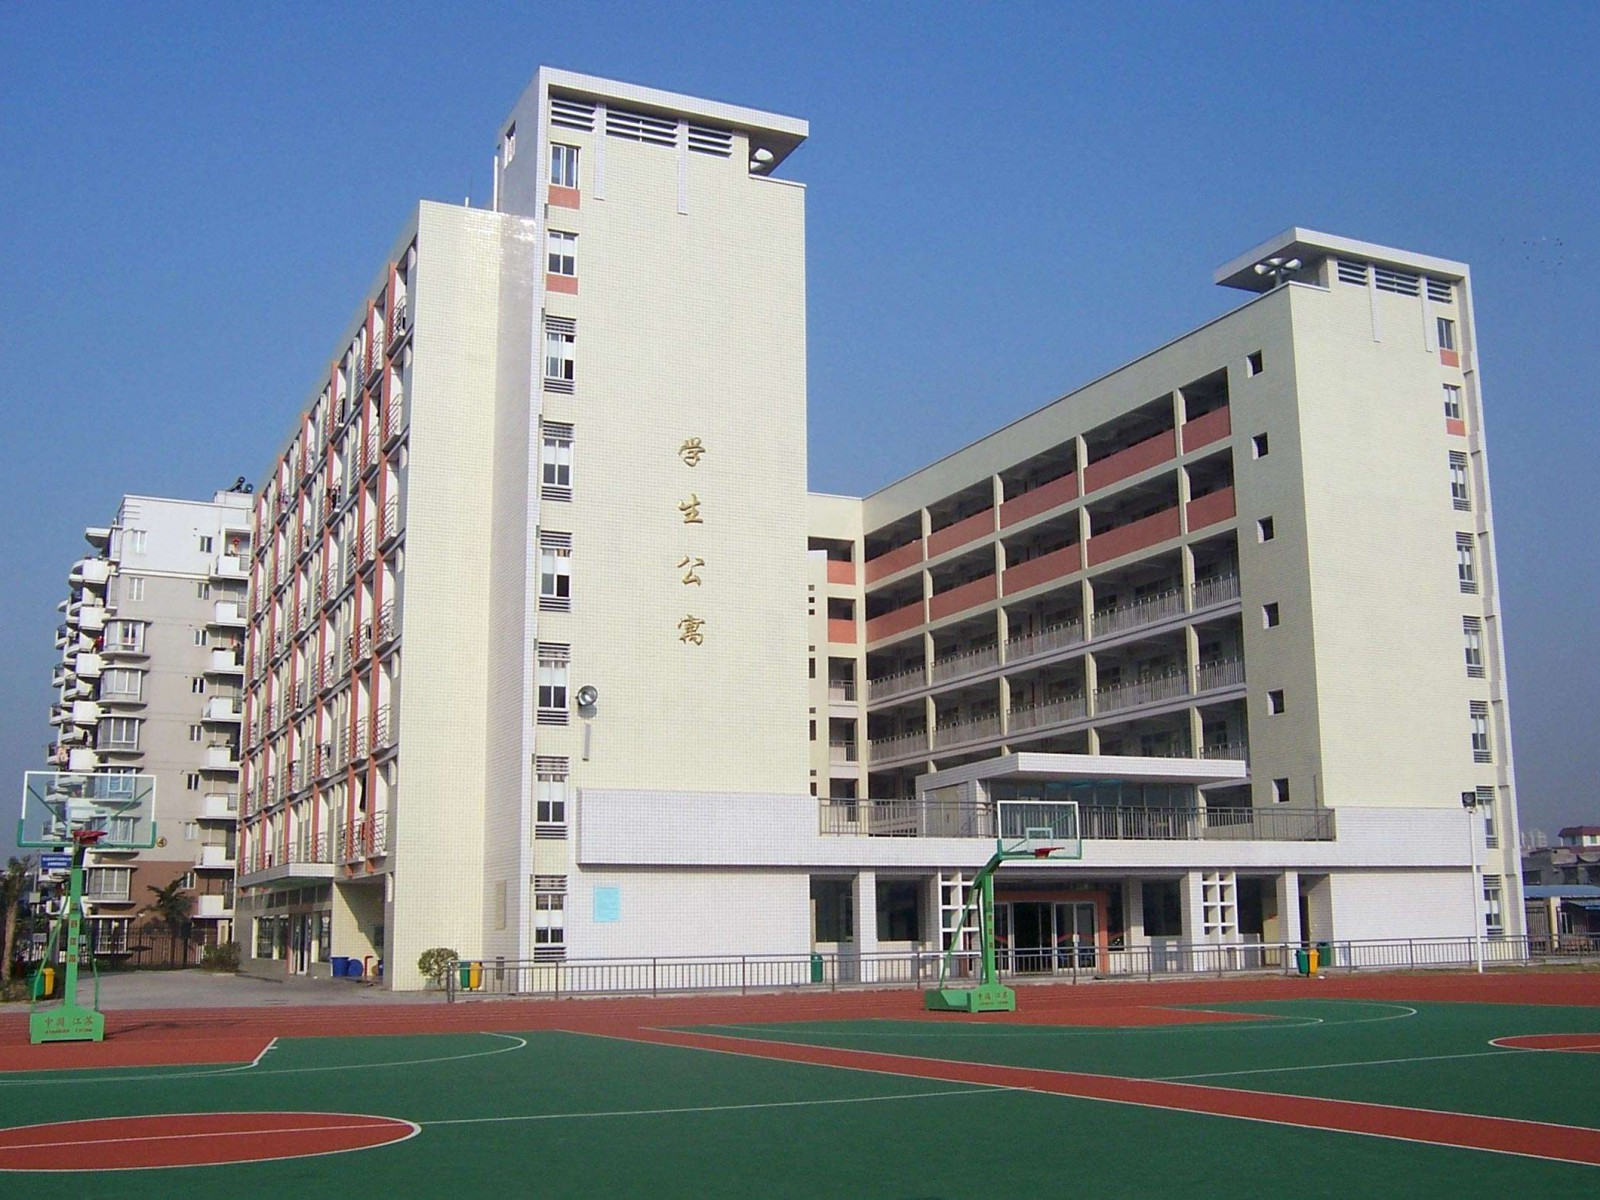 Vocational Secondary Schools, Fuzhou, China